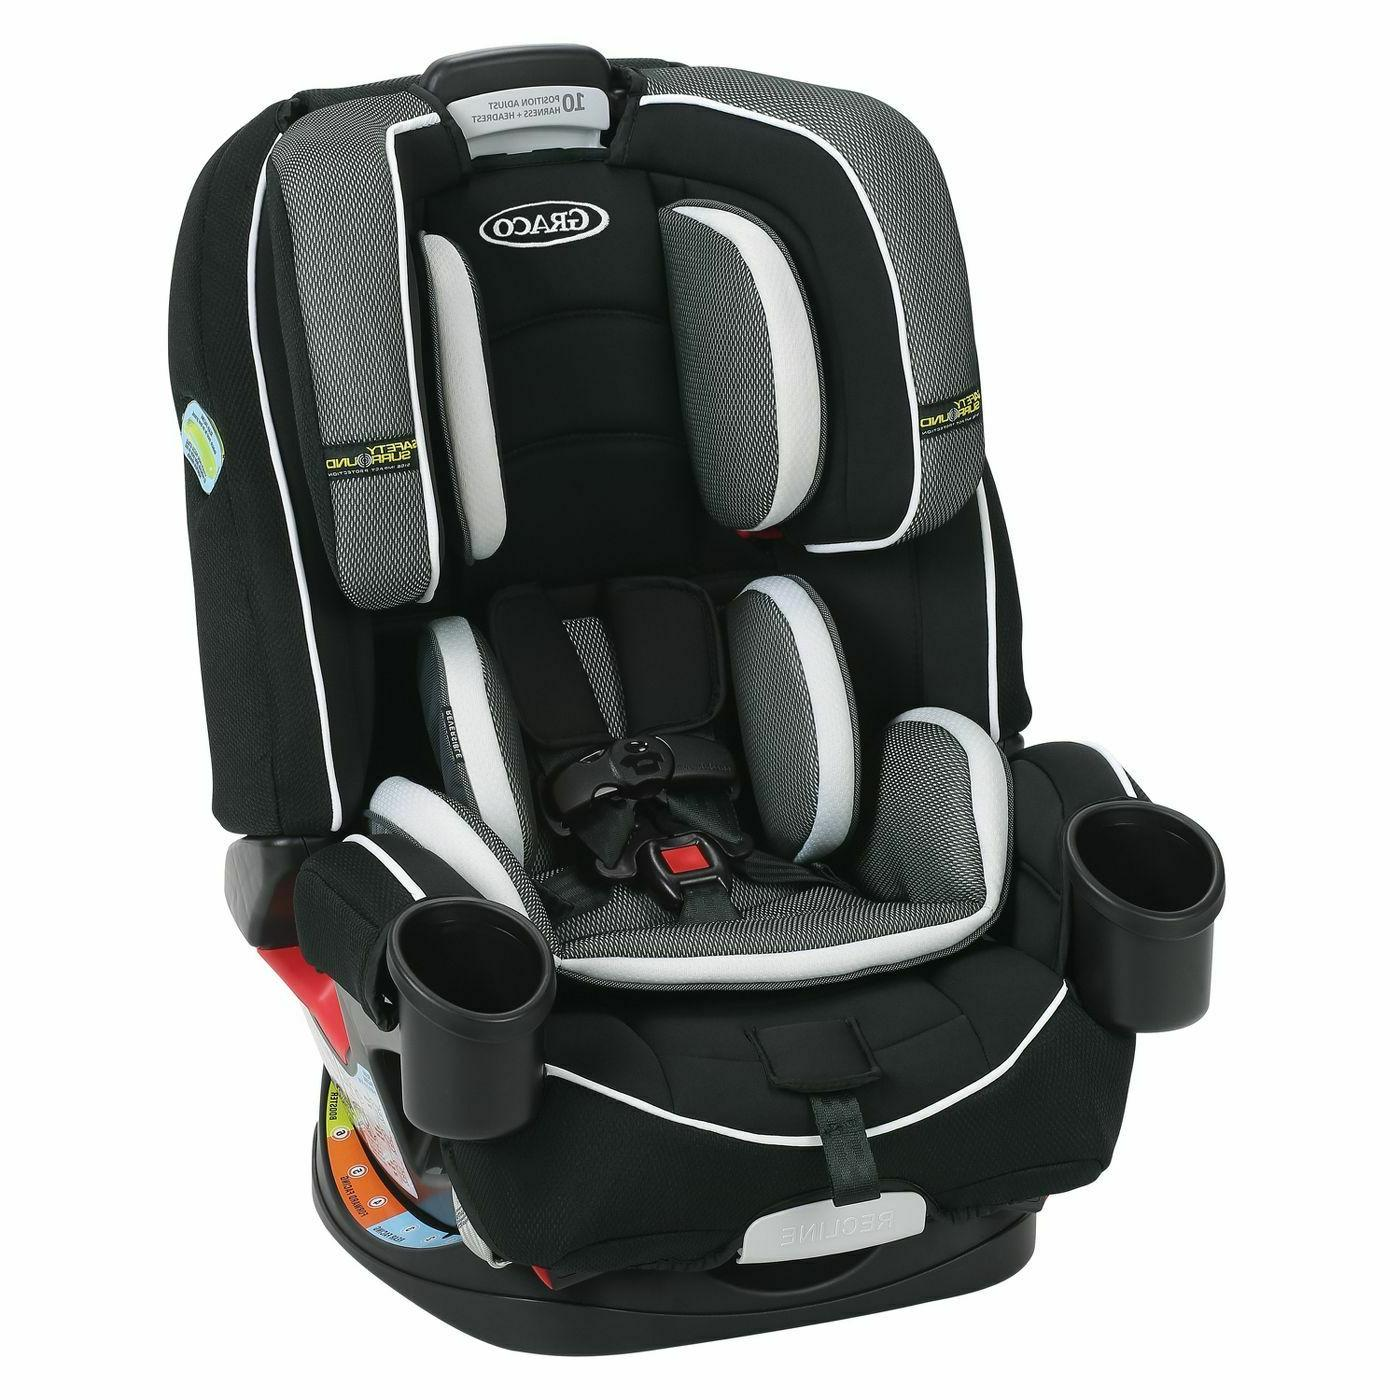 Graco 4Ever All-In-One Convertible Car Seat w/ Safety Surrou